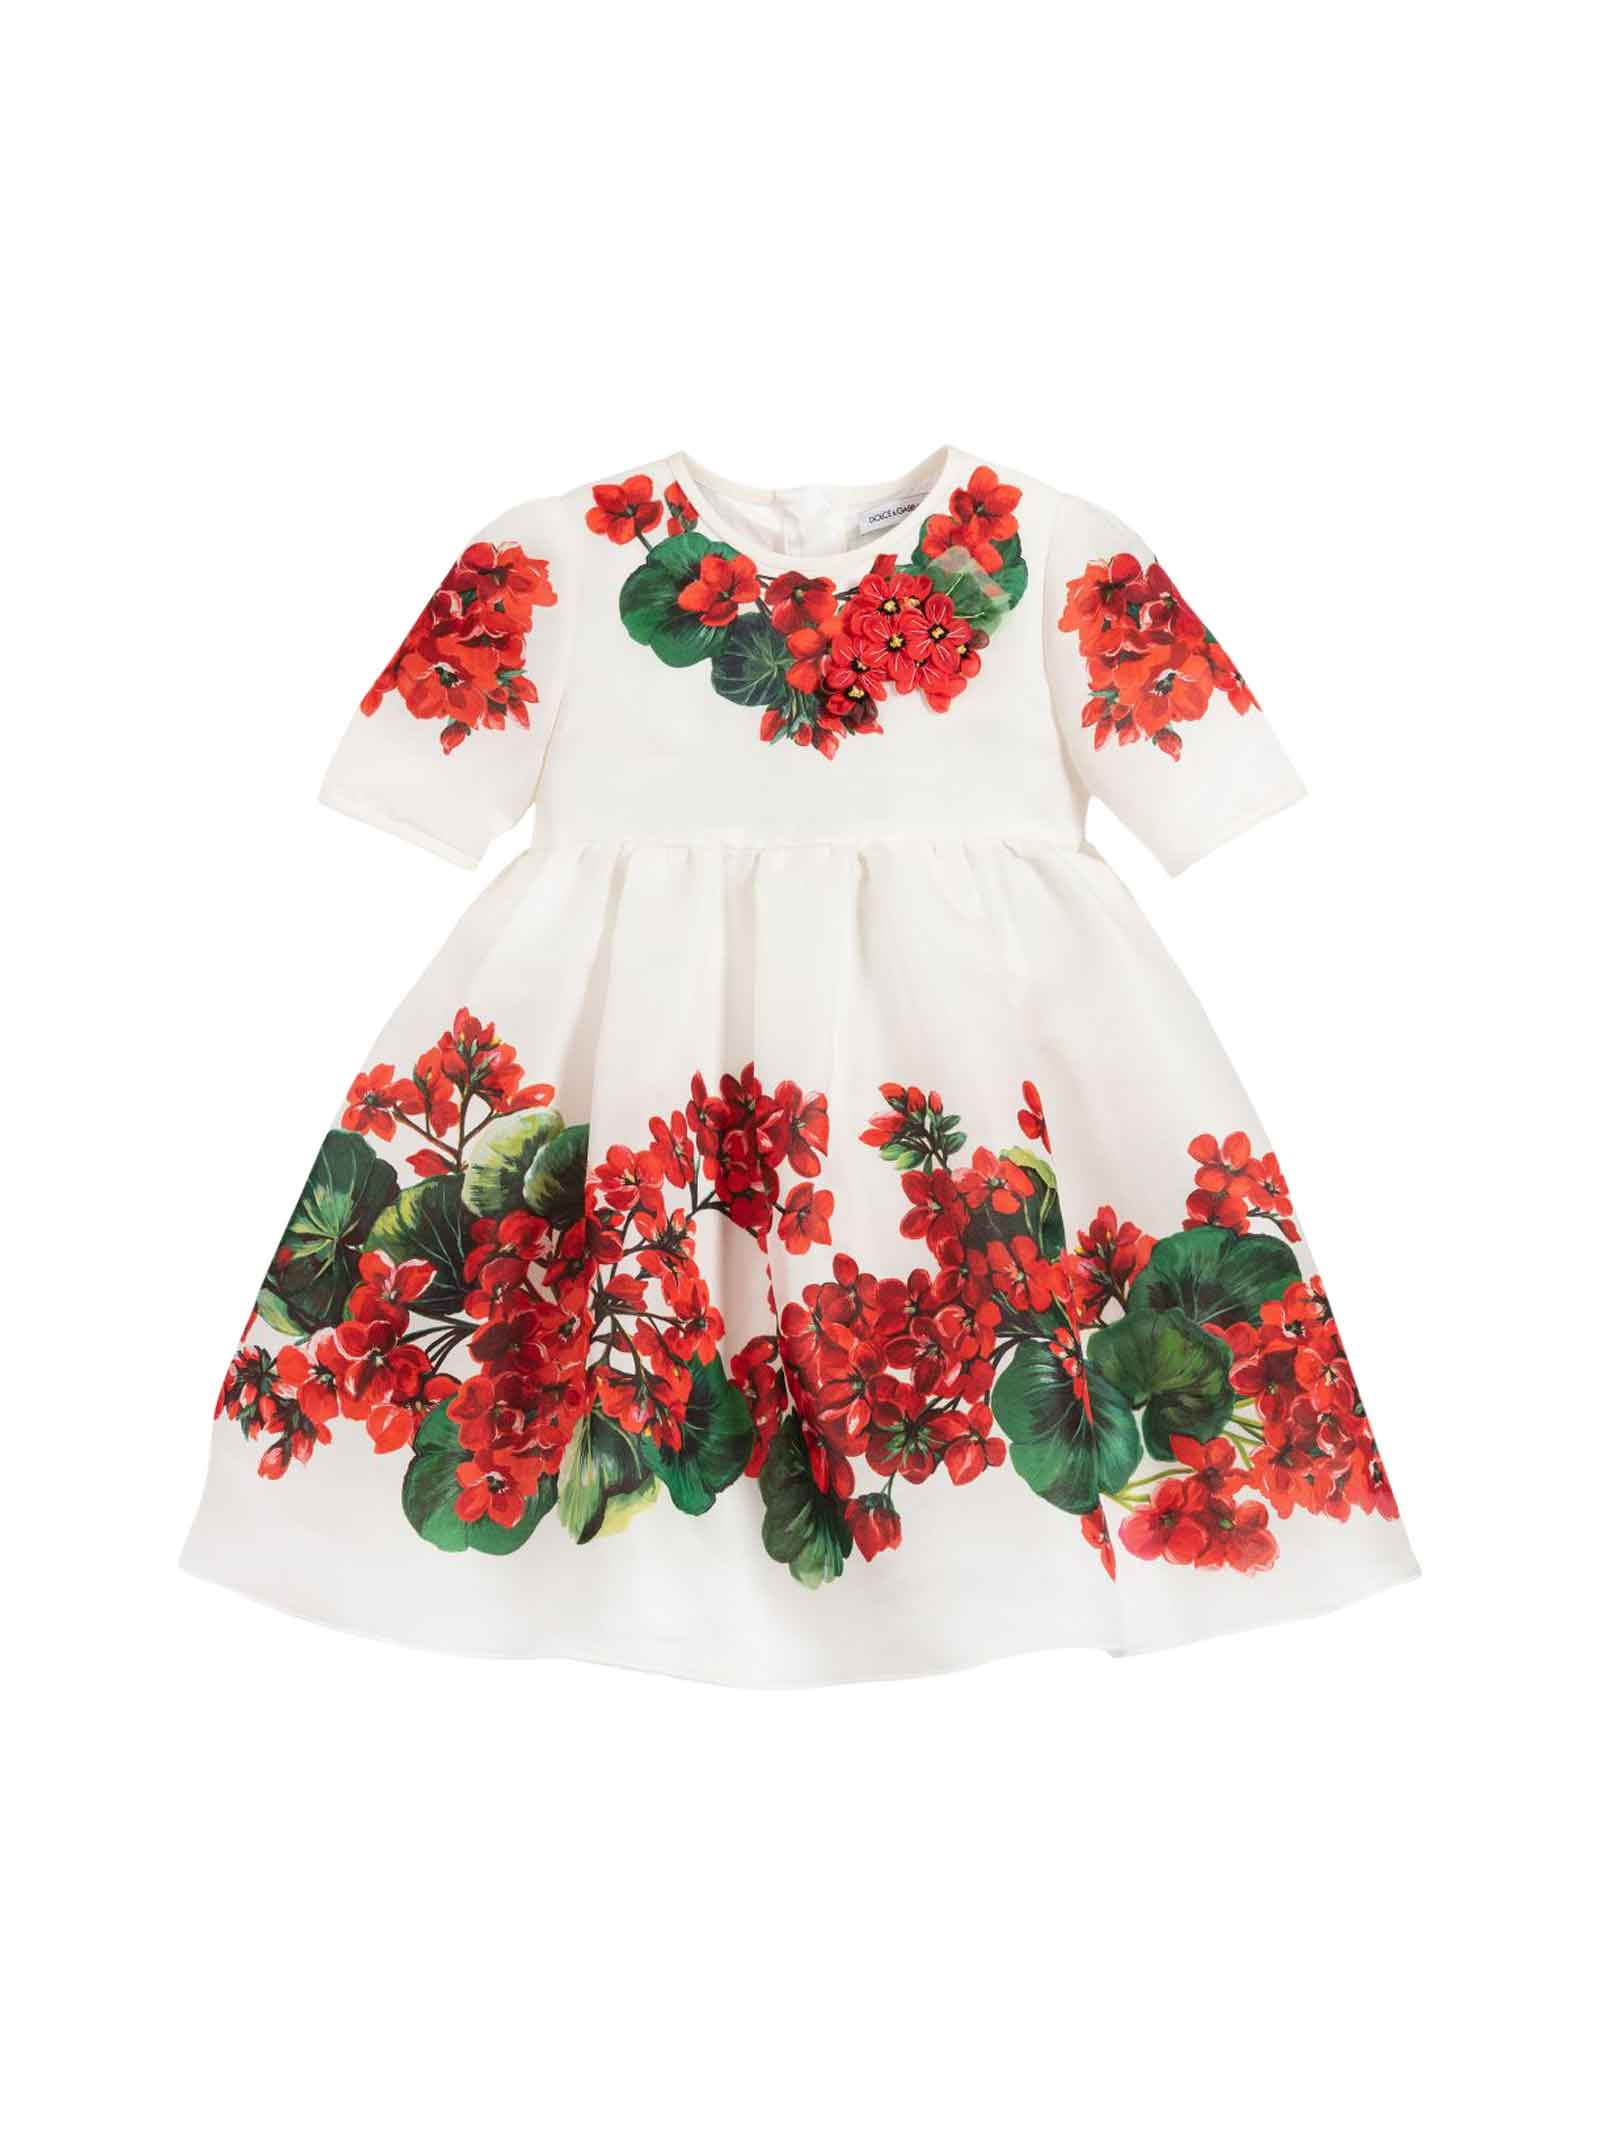 Dolce & Gabbana Dolce E Gabbana Kids White Dress